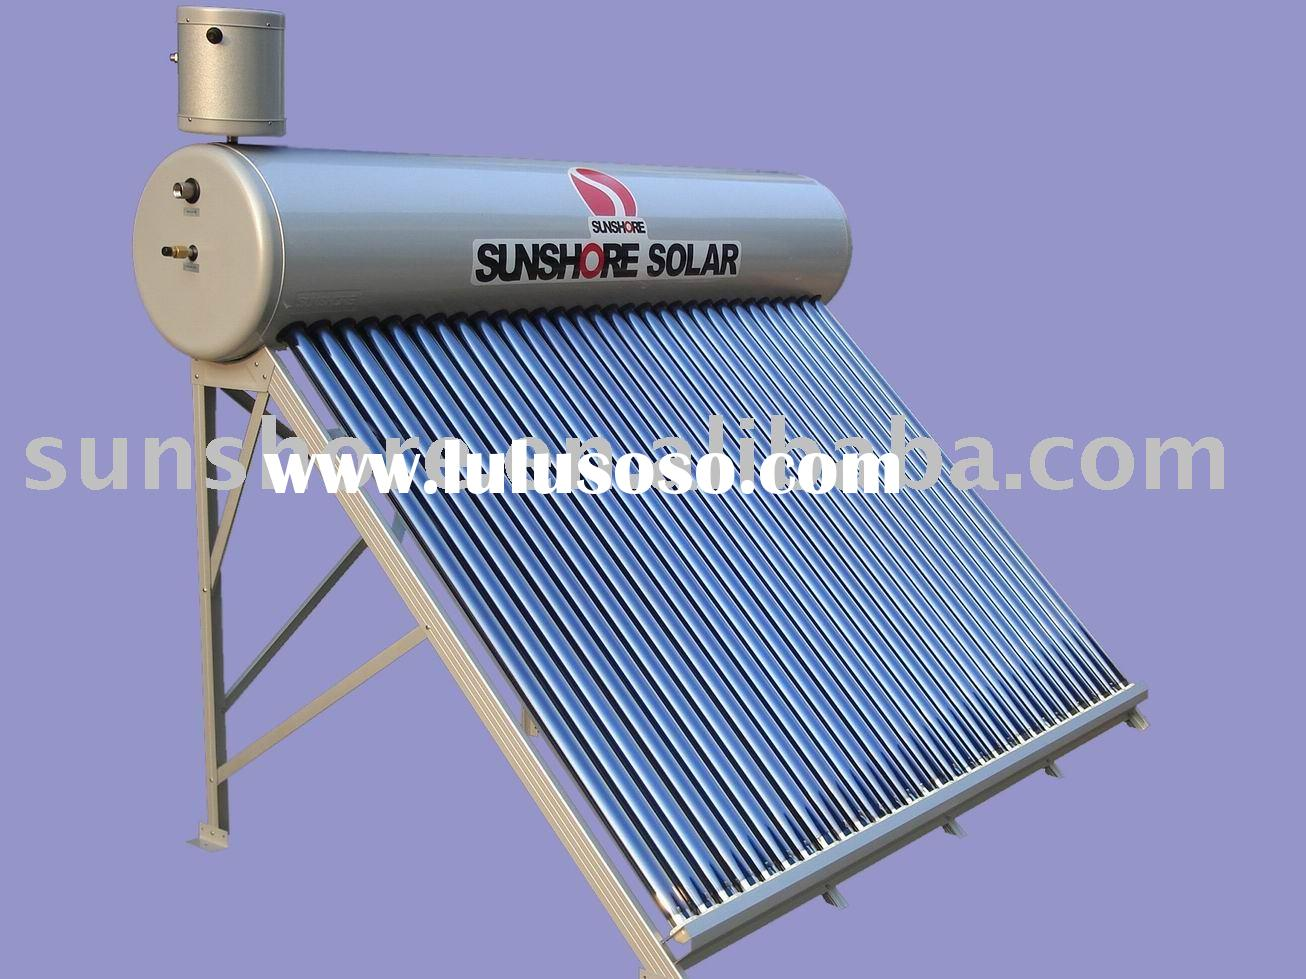 Sunshore solar water heater- High quality with competitive price.